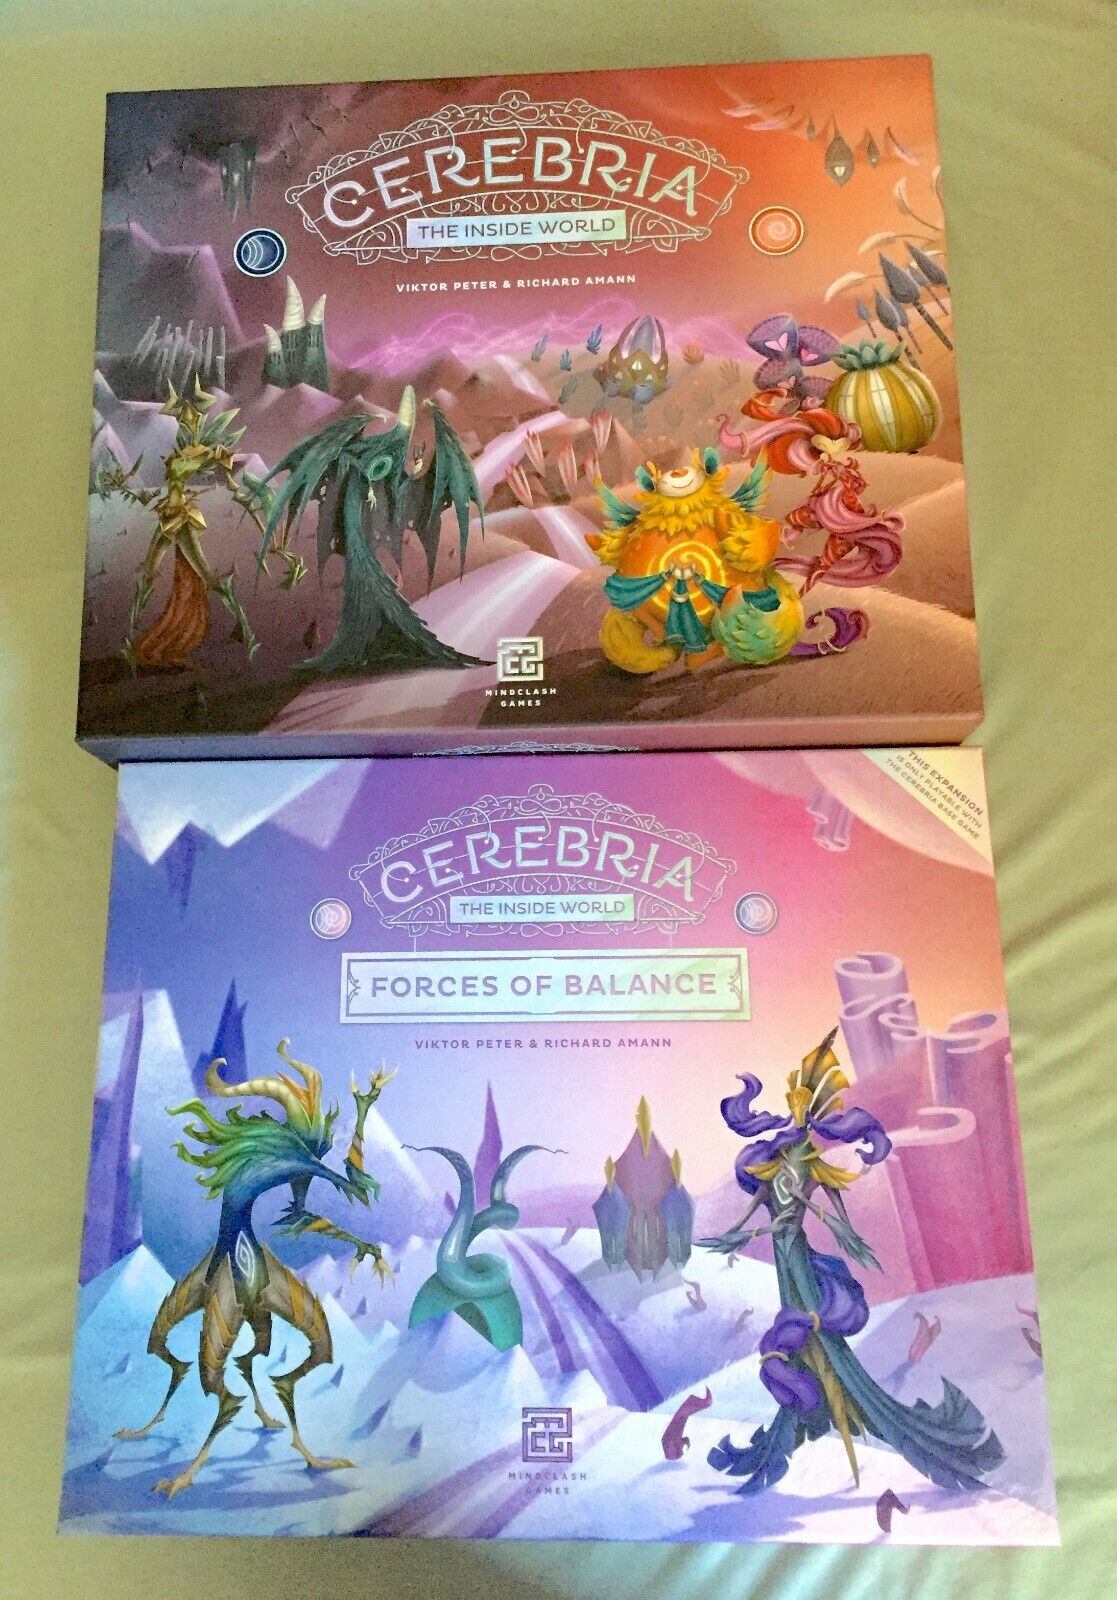 Cerebria The Inside World + Forces of Balance Expansion - Gently used